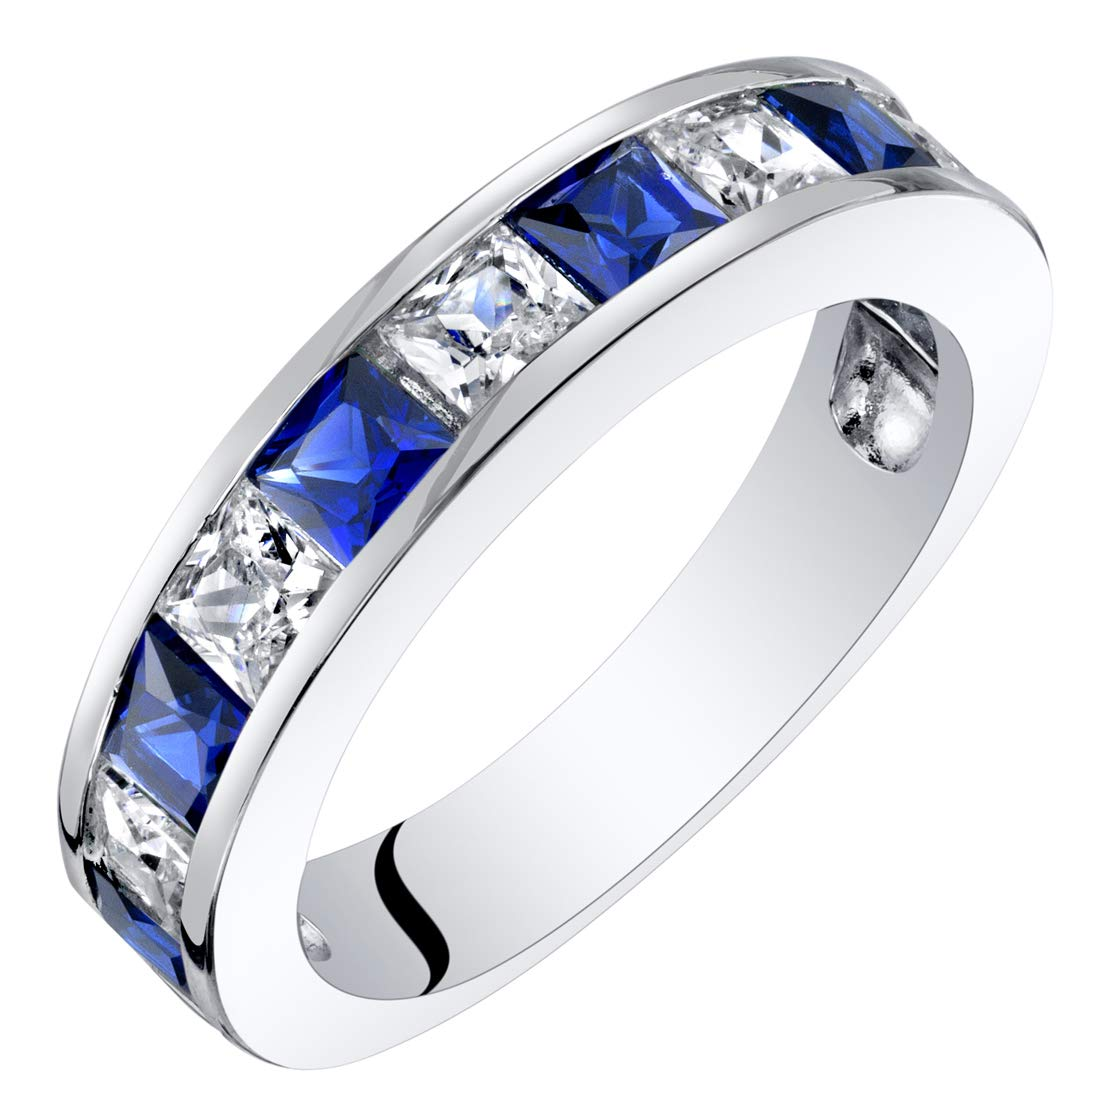 Sterling Silver Princess Cut Created Sapphire Half Eternity Wedding Ring Band Size 9